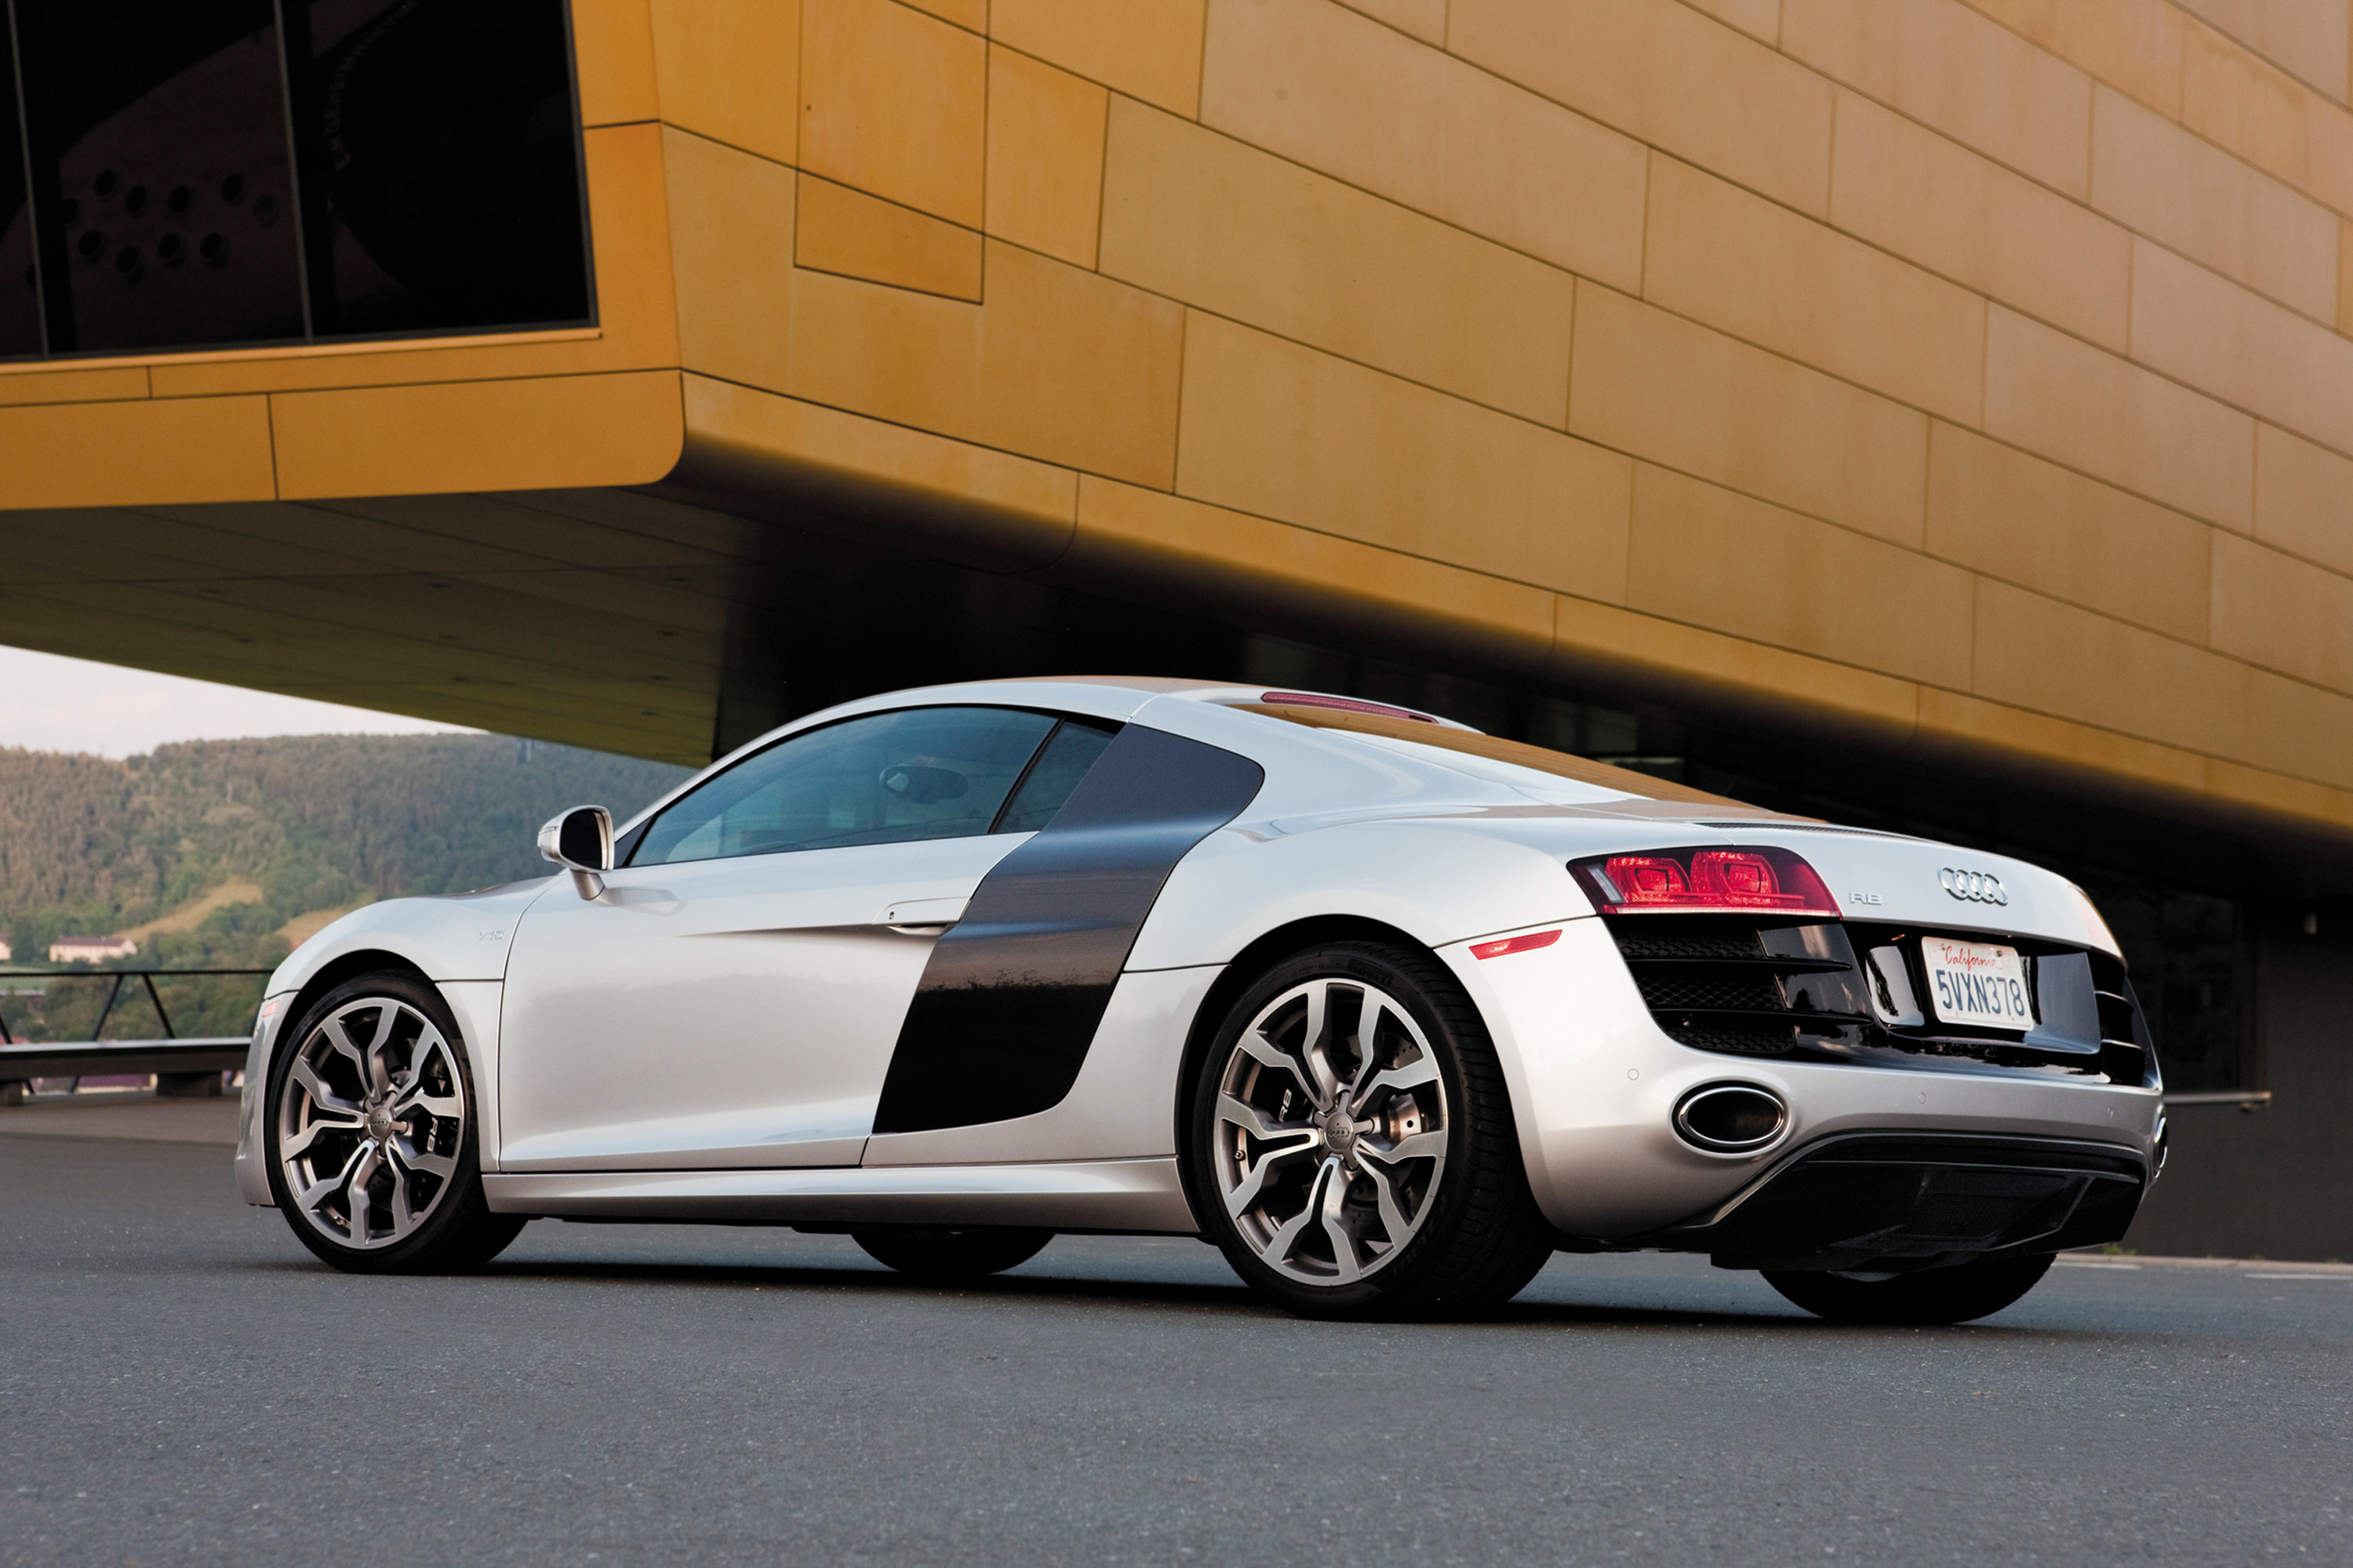 2010 audi r8 5 2 fsi quattro pricing announced. Black Bedroom Furniture Sets. Home Design Ideas